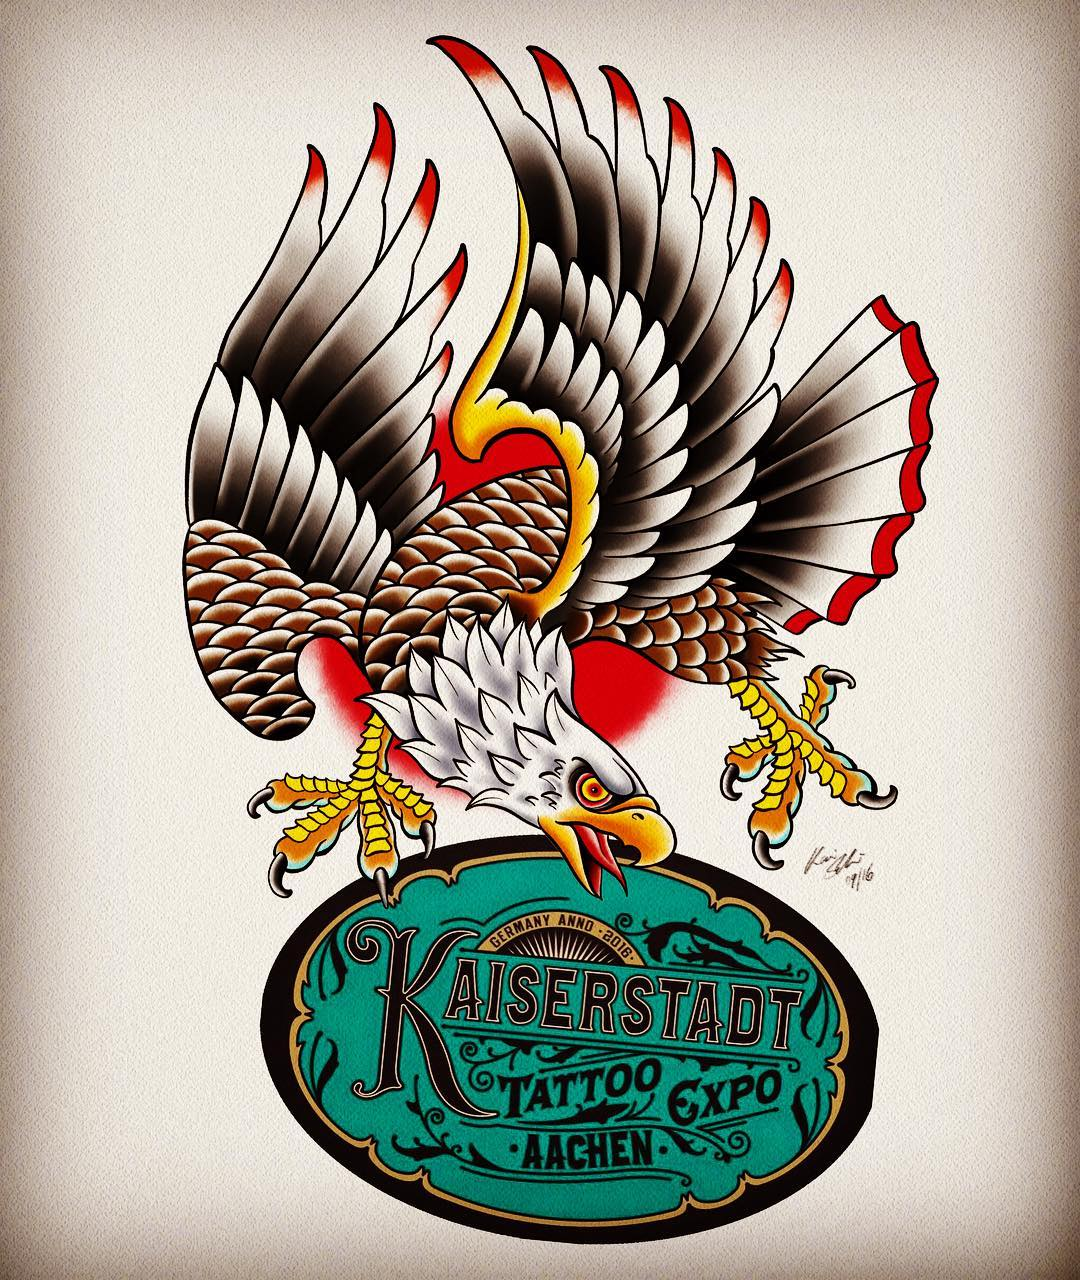 I'll be working @kaiserstadt_tattoo_expo_aachen this upcoming weekend and have f...